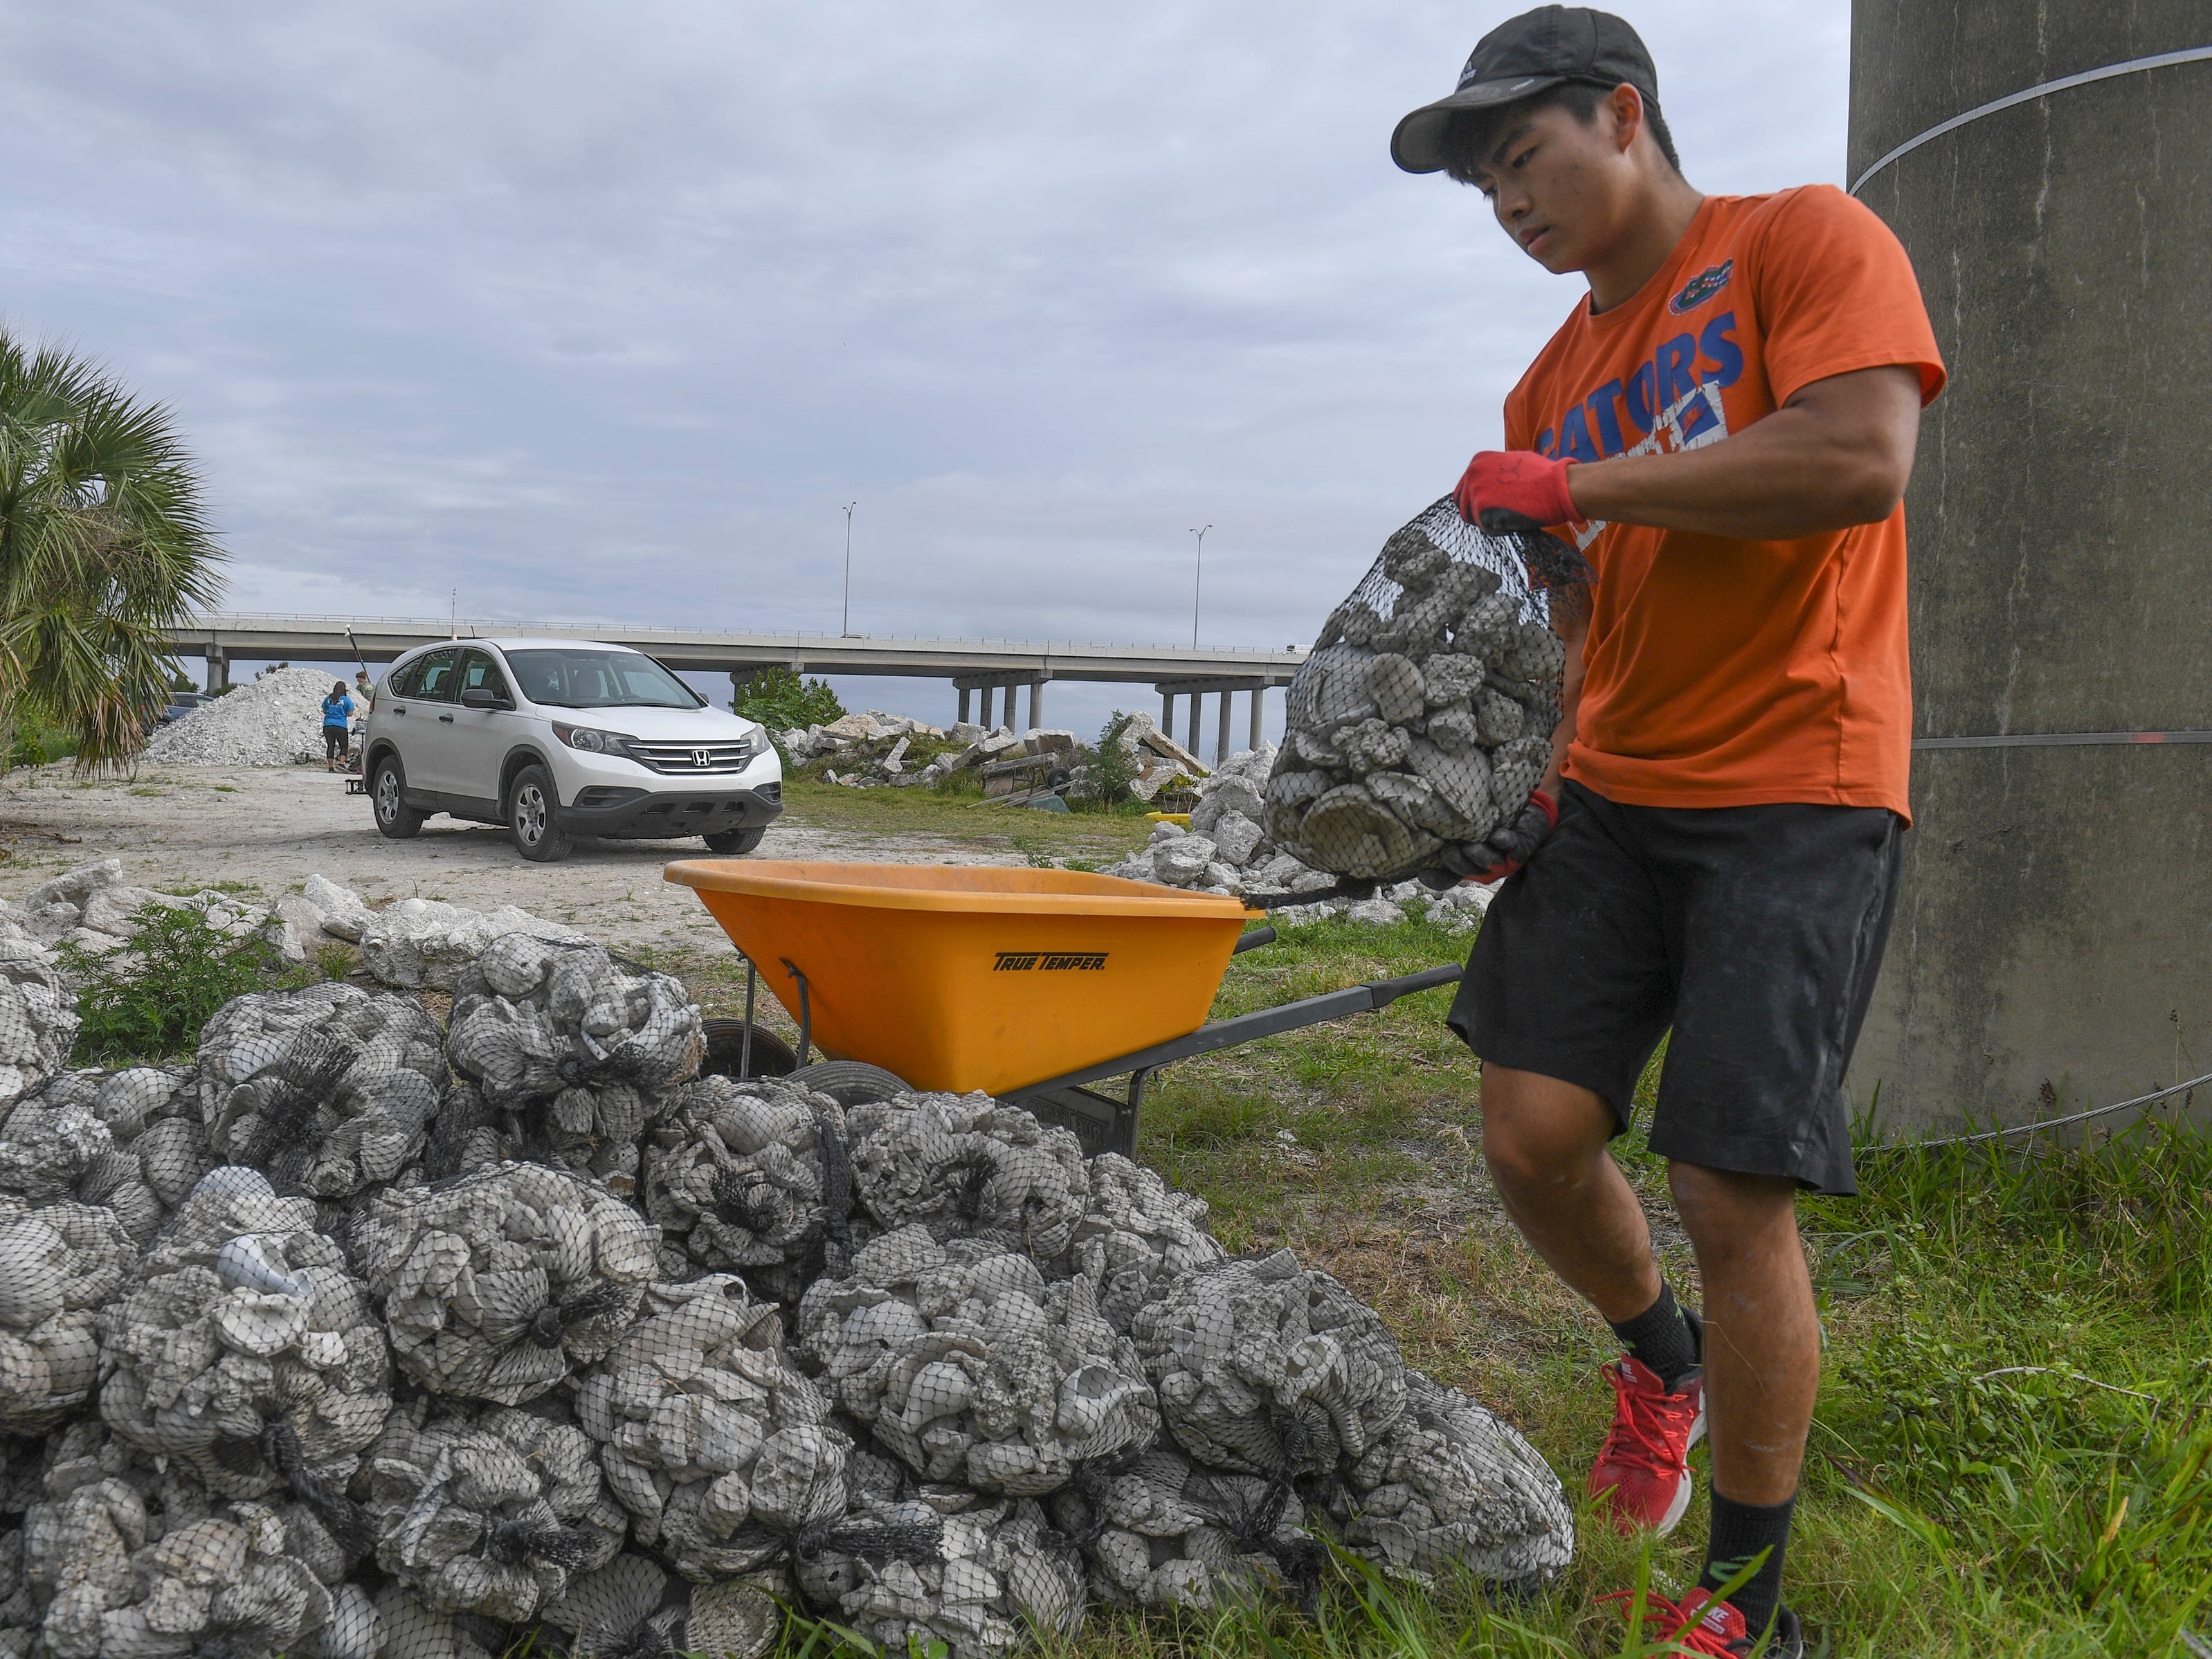 Students volunteer to help during the Ocean Research & Conservation Association's (ORCA) shell bagging day for the Living Lagoon Program on Monday, March 18, 2019, along the shore of the Indian river Lagoon at the southwest corner of the Alma Lee Loy Bridge behind the water treatment plant, in Vero Beach. The program is about actively restoring the Indian River Lagoon through habitat restoration. Information on how to volunteer can be found at www.teamorca.com.